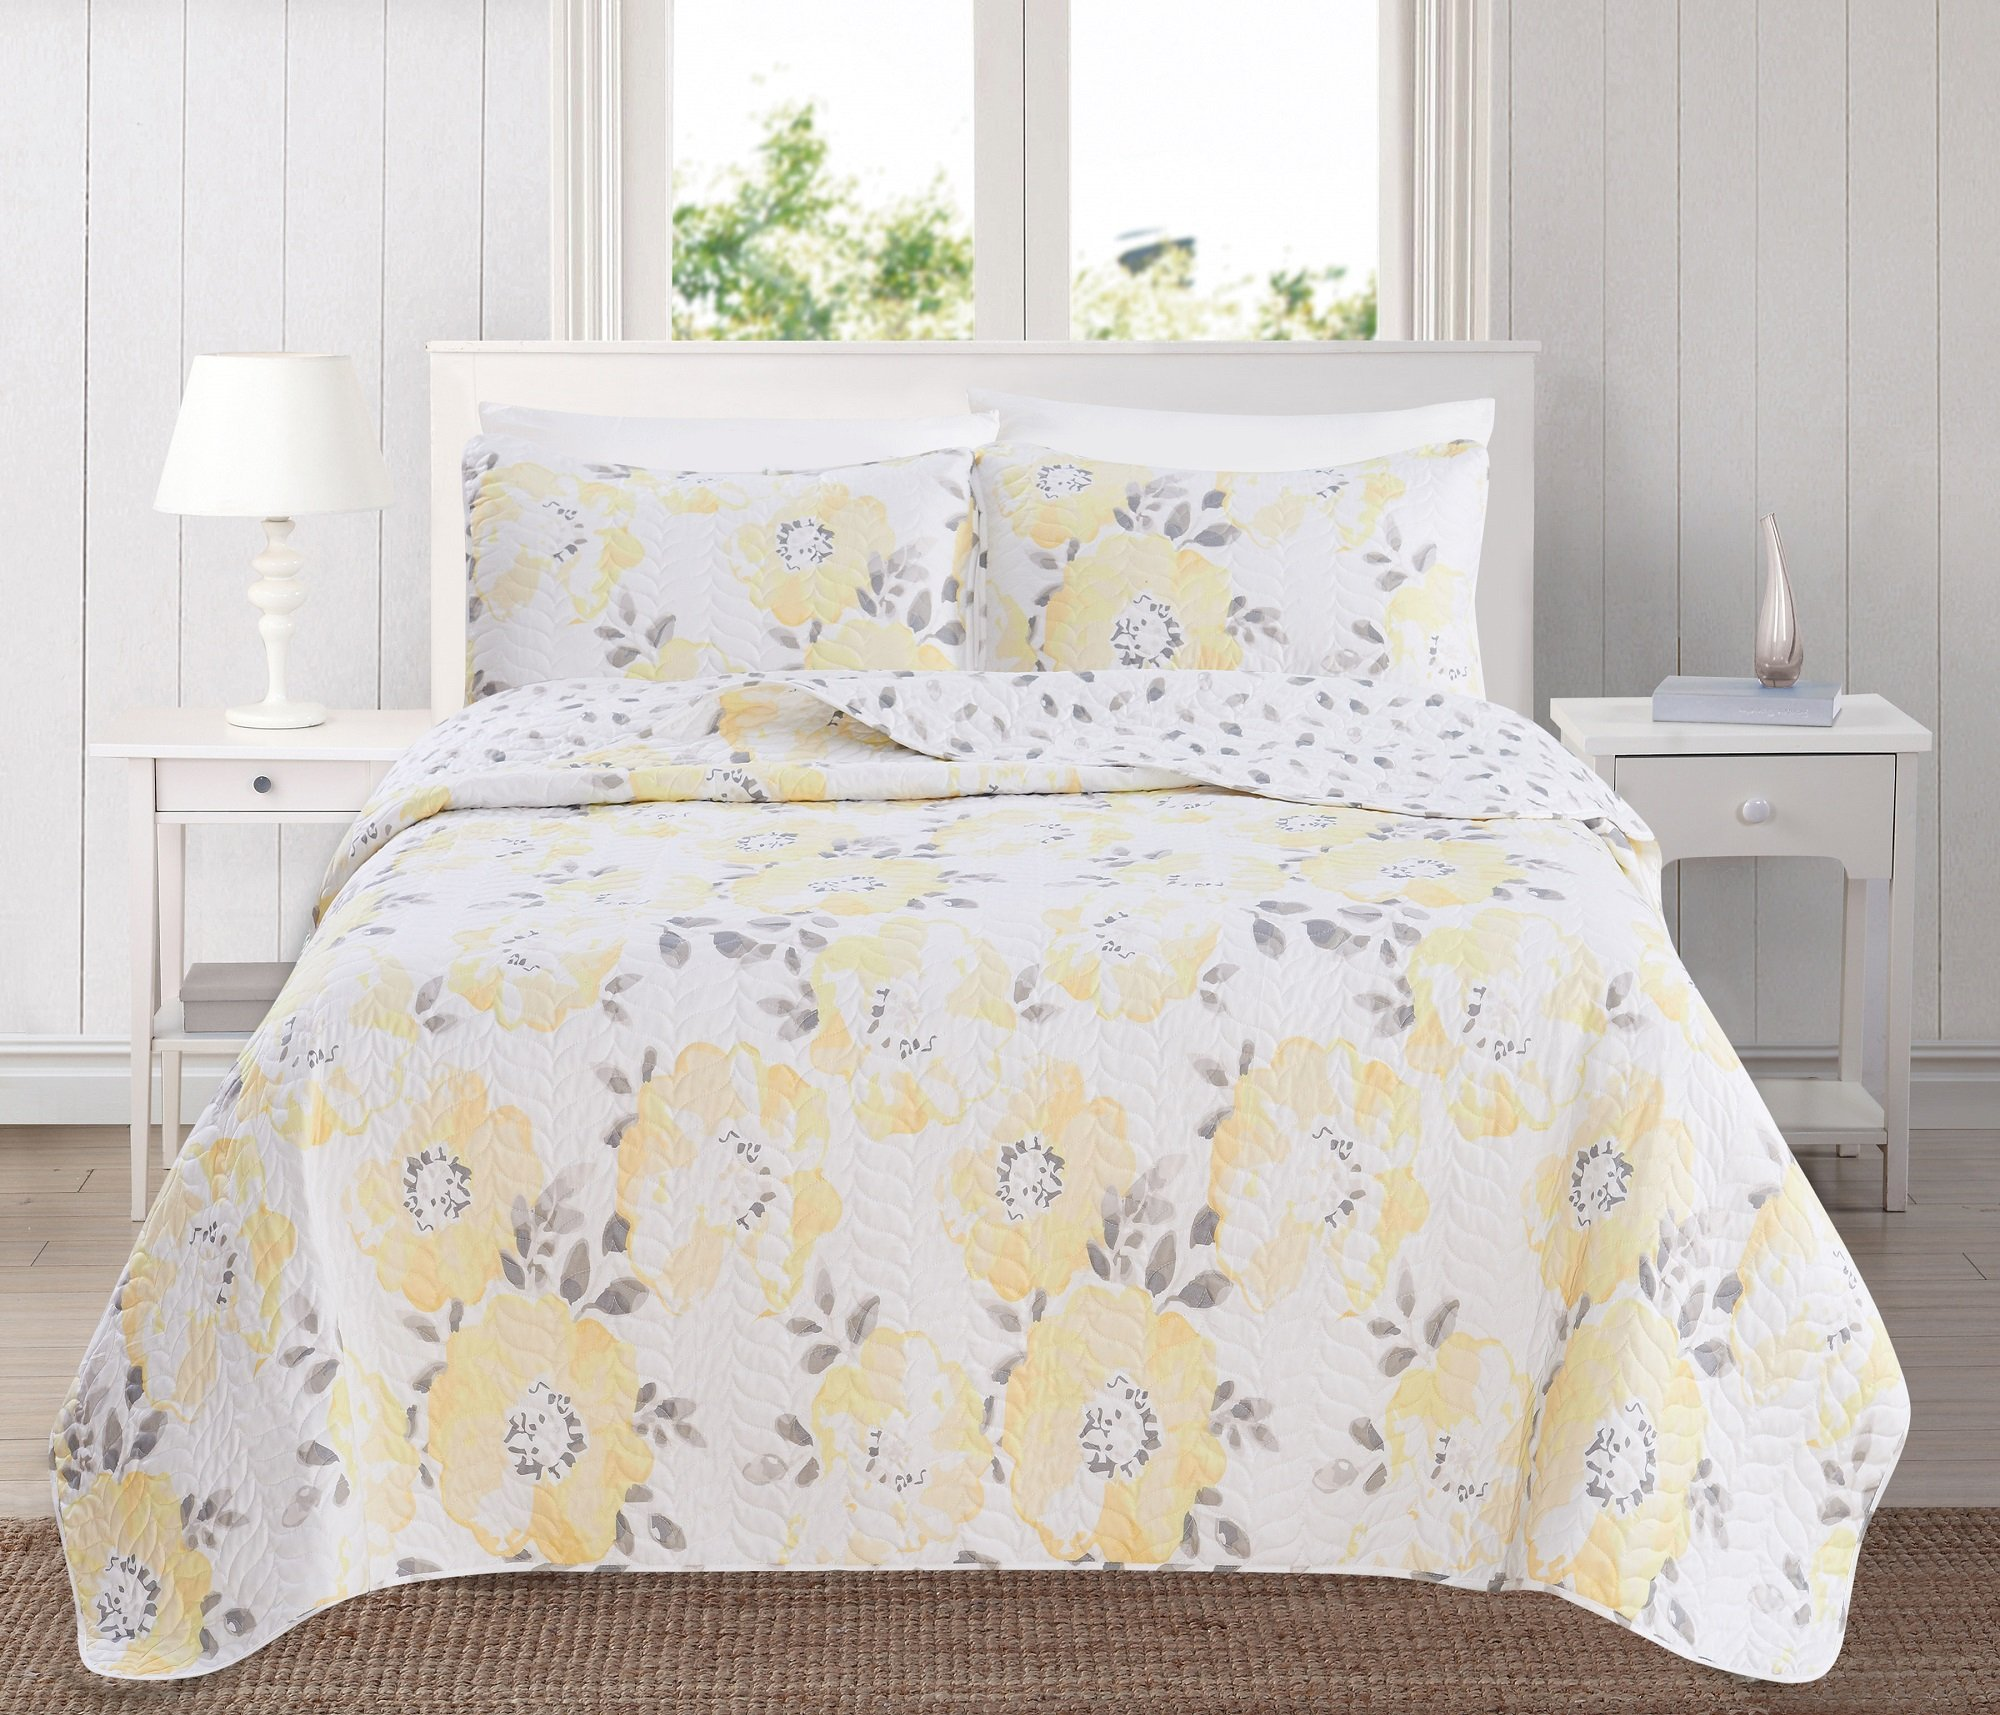 Great Bay Home 3-Piece Reversible Quilt Set with Shams. All-Season Bedspread with Floral Printed Pattern in Bright Colors. Helene Collection By Brand. (Full/Queen, Yellow)